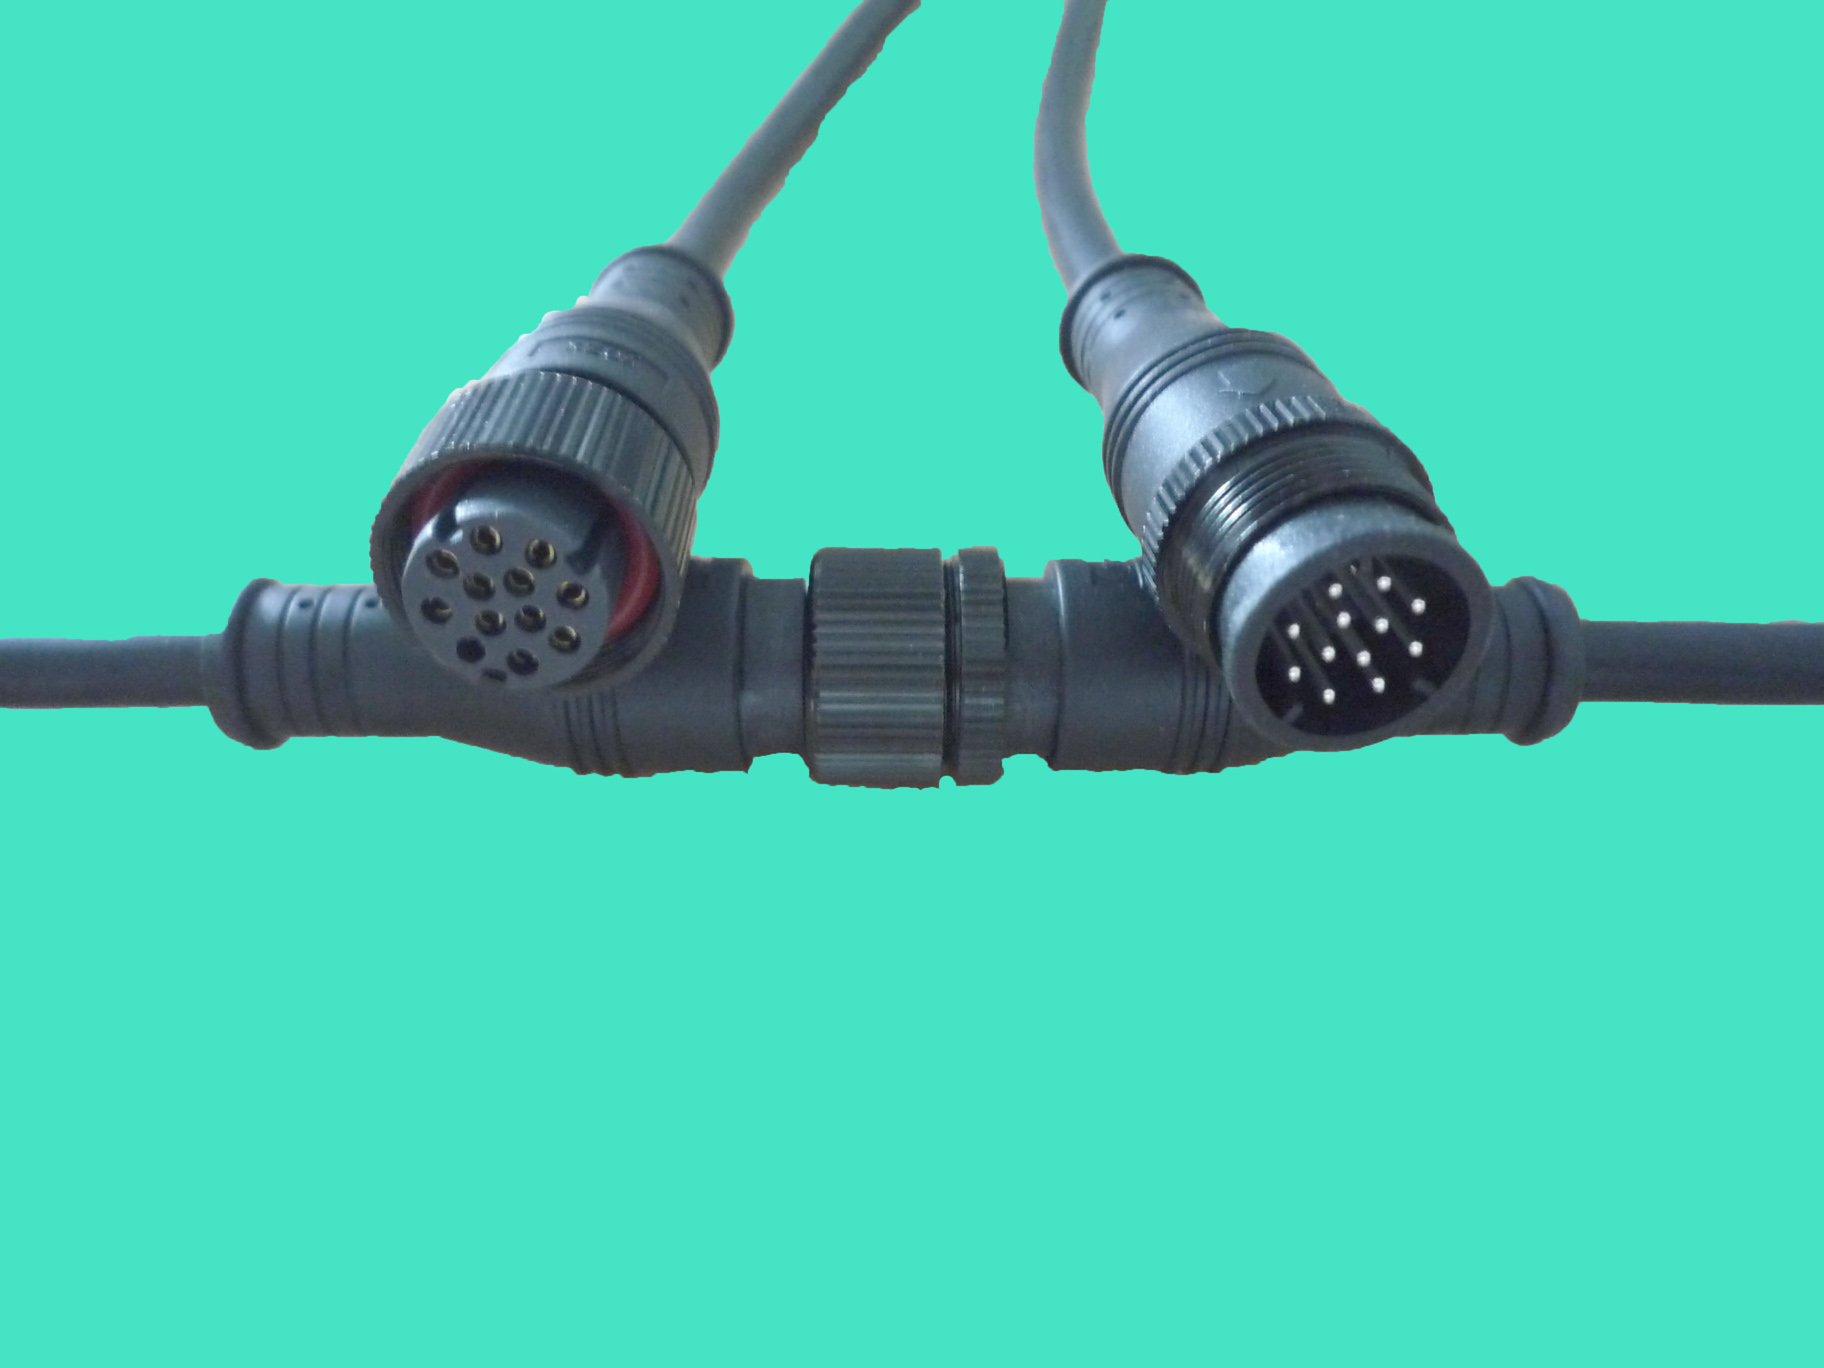 waterproof wire and plug